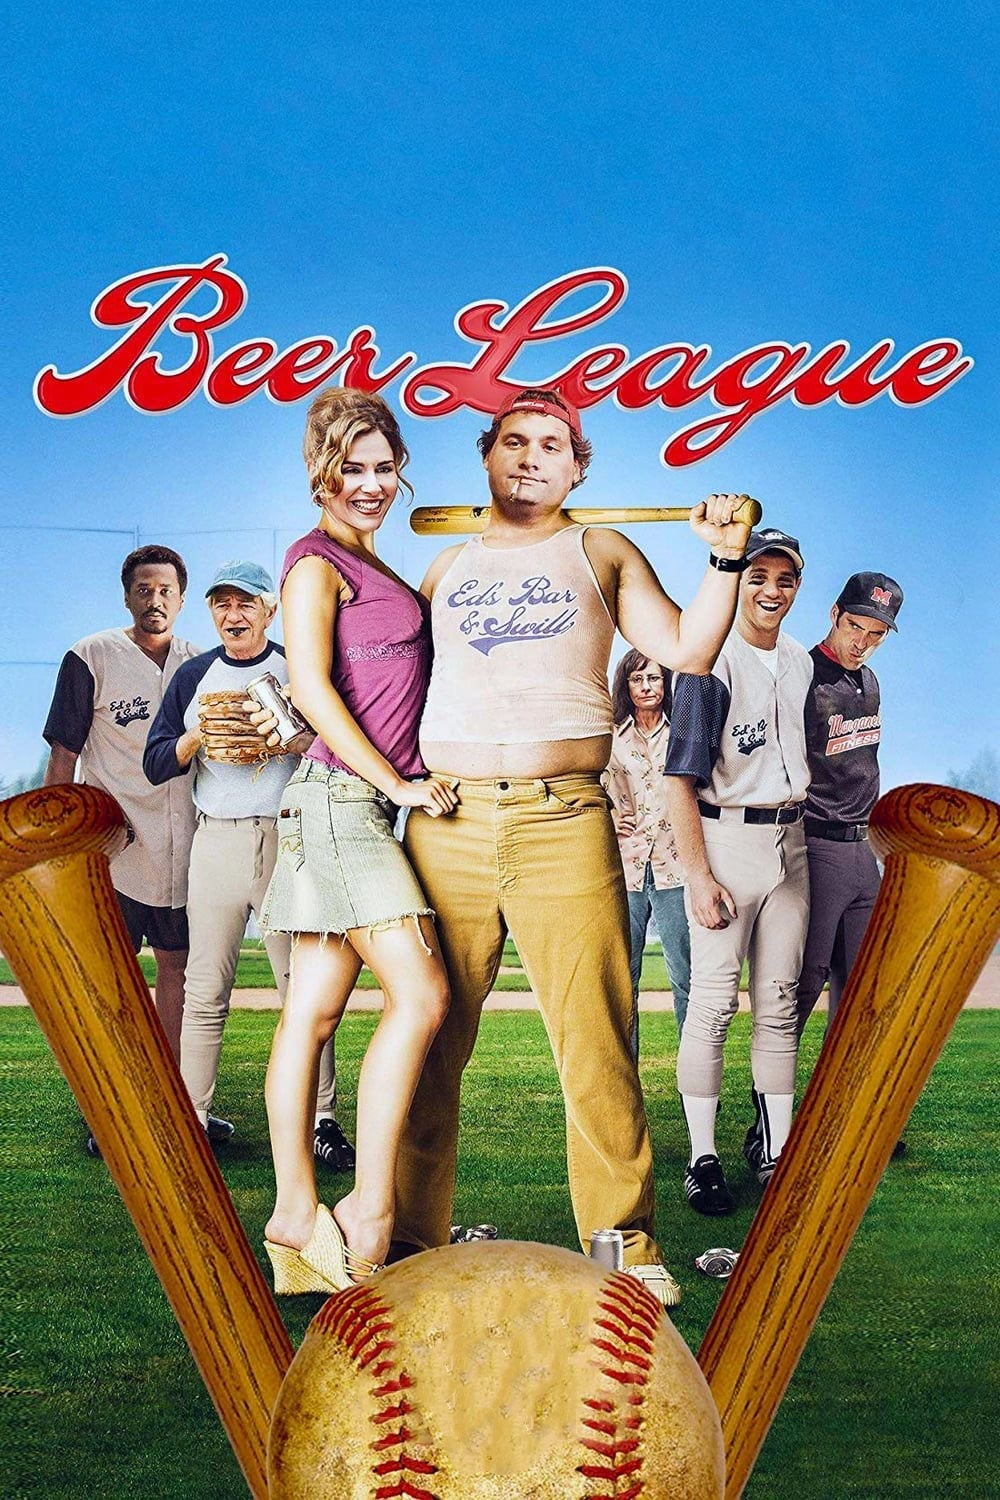 Beer League Movie Streaming Online Watch on Tubi